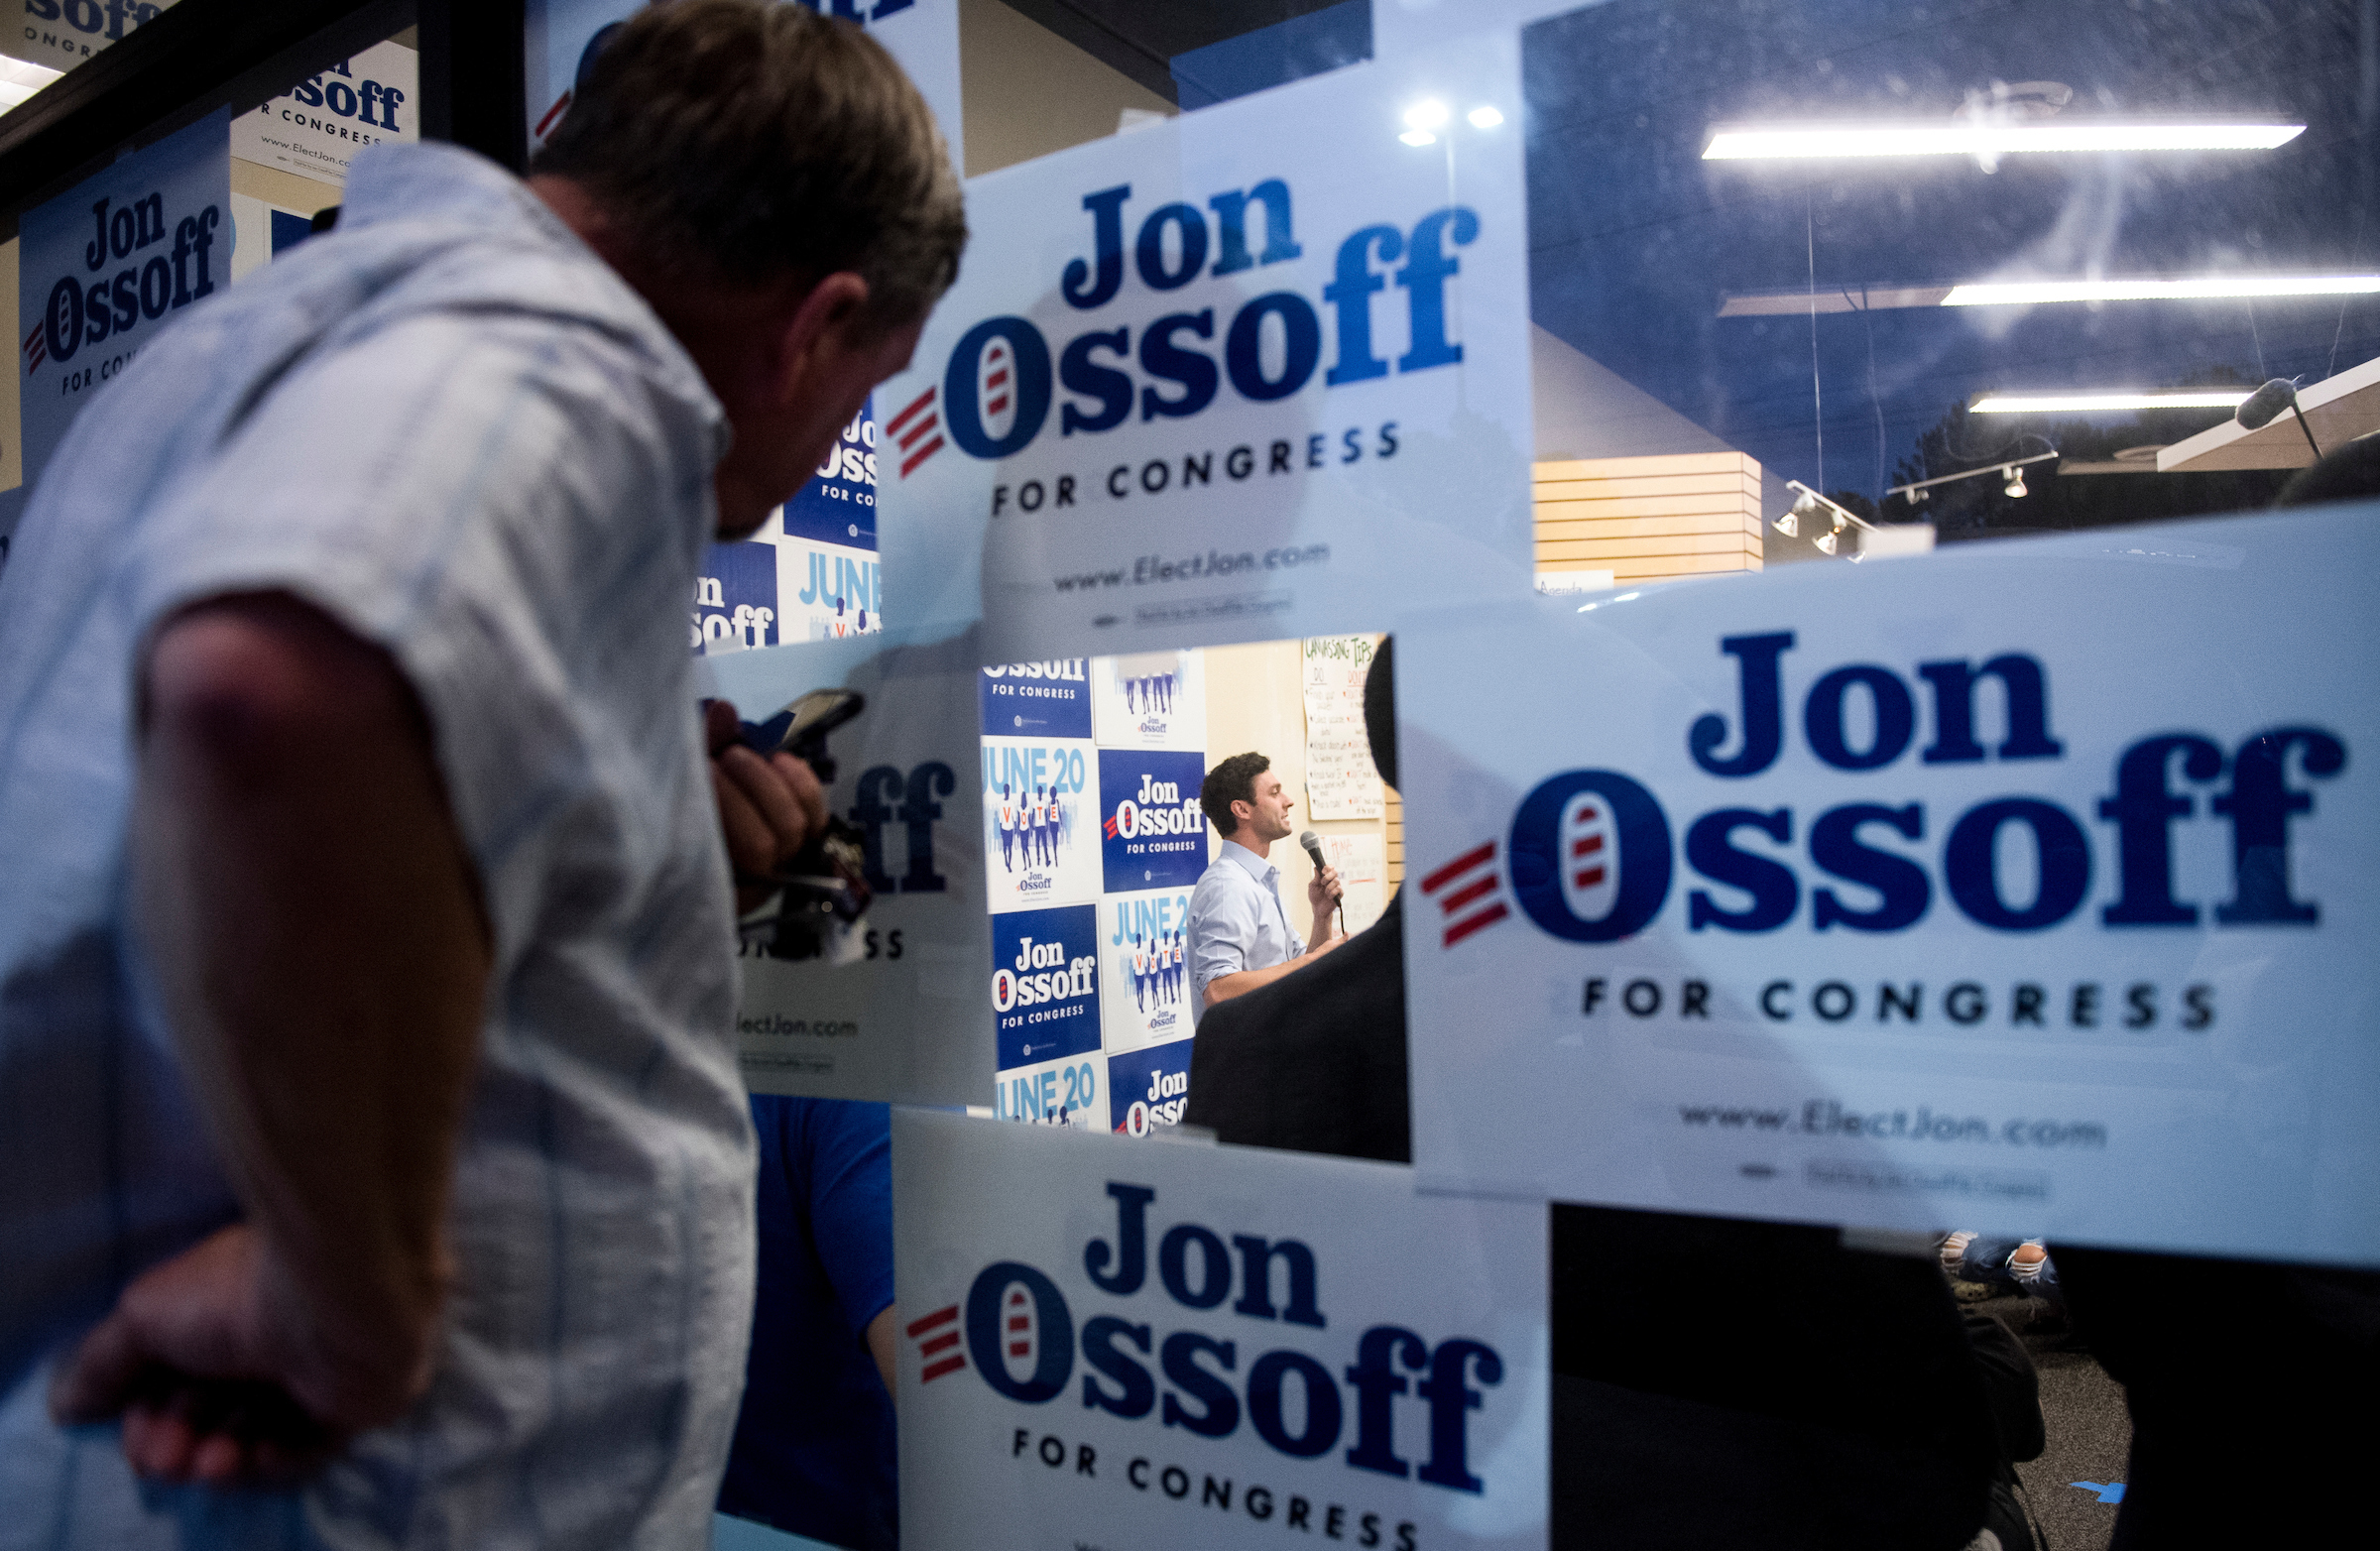 UNITED STATES - JUNE 19: Supporters watch from outside the packed final campaign rally for Democratic candidate for Georgia's 6th Congressional district Jon Ossoff at his campaign office in Roswell, Ga., on the final day of campaigning on Monday, June 19, 2017. Ossoff is facing off against Republican Karen Handel in the special election to fill the seat vacated by current HHS Secretary Tom Price will be held on Tuesday. (Photo By Bill Clark/CQ Roll Call)